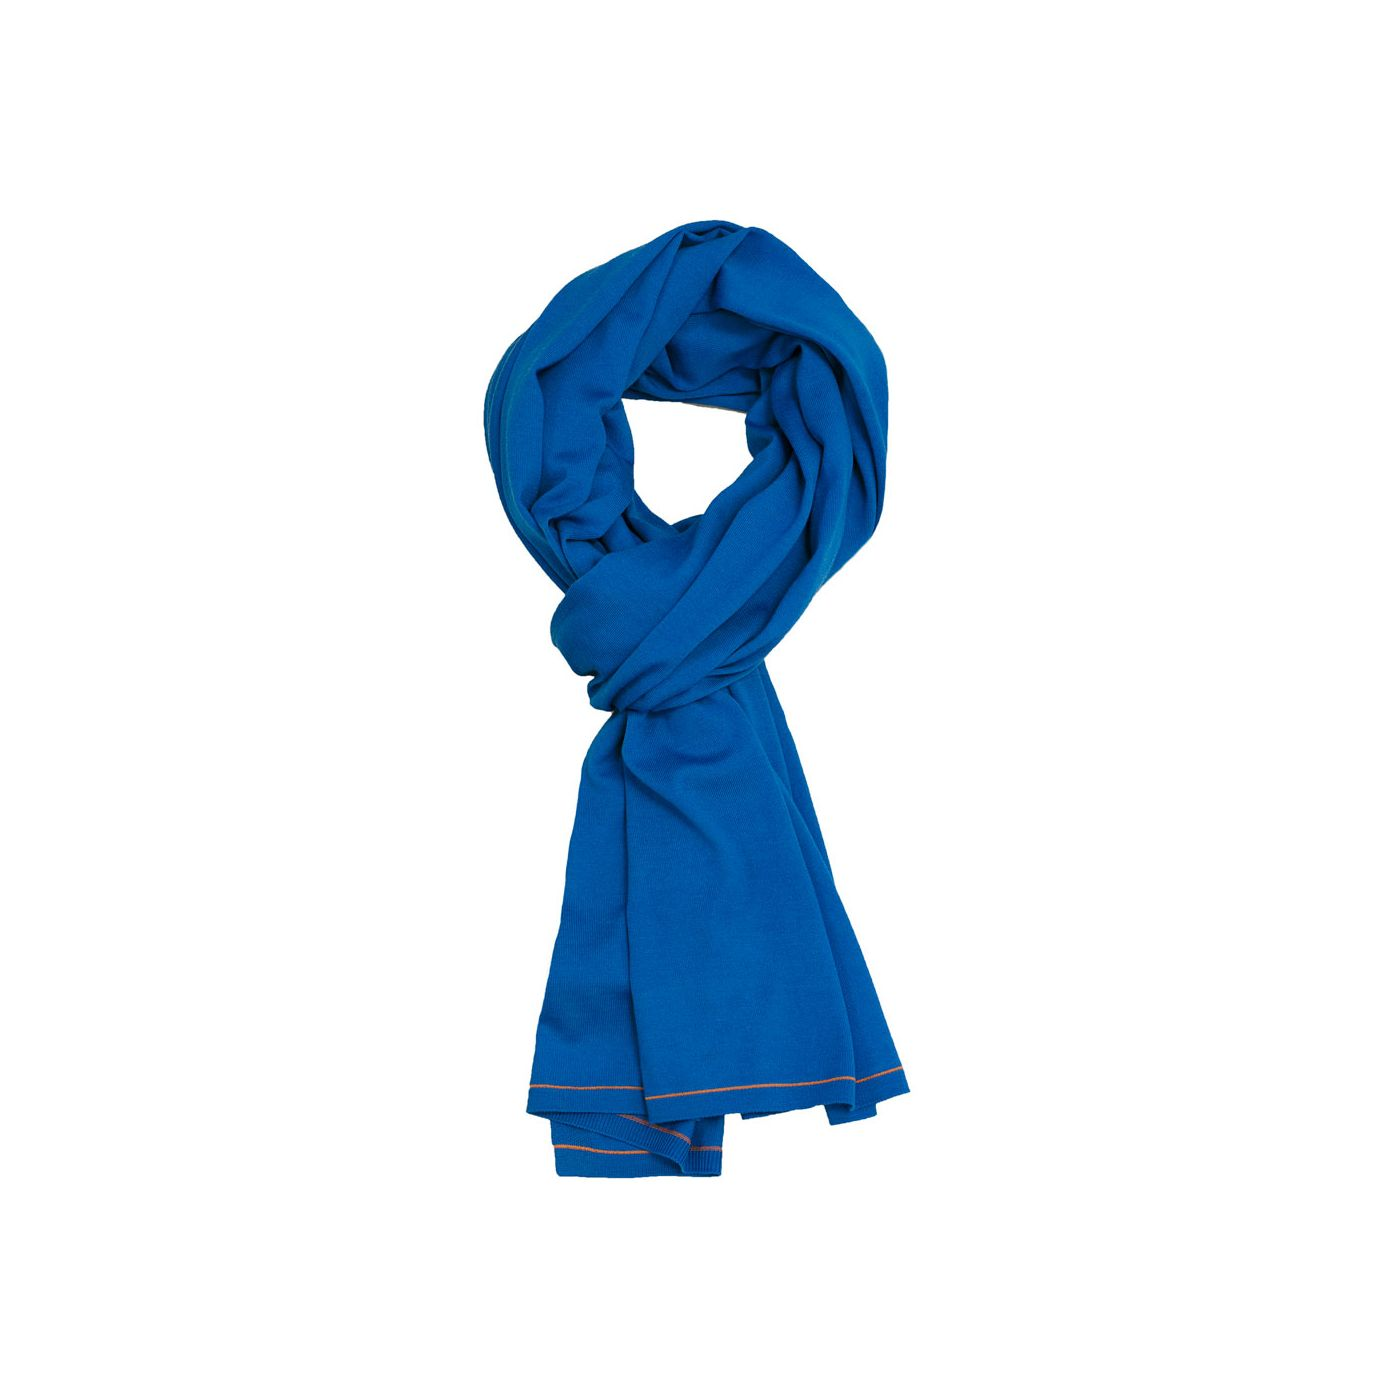 Scarf for men made of Merino wool in Blue